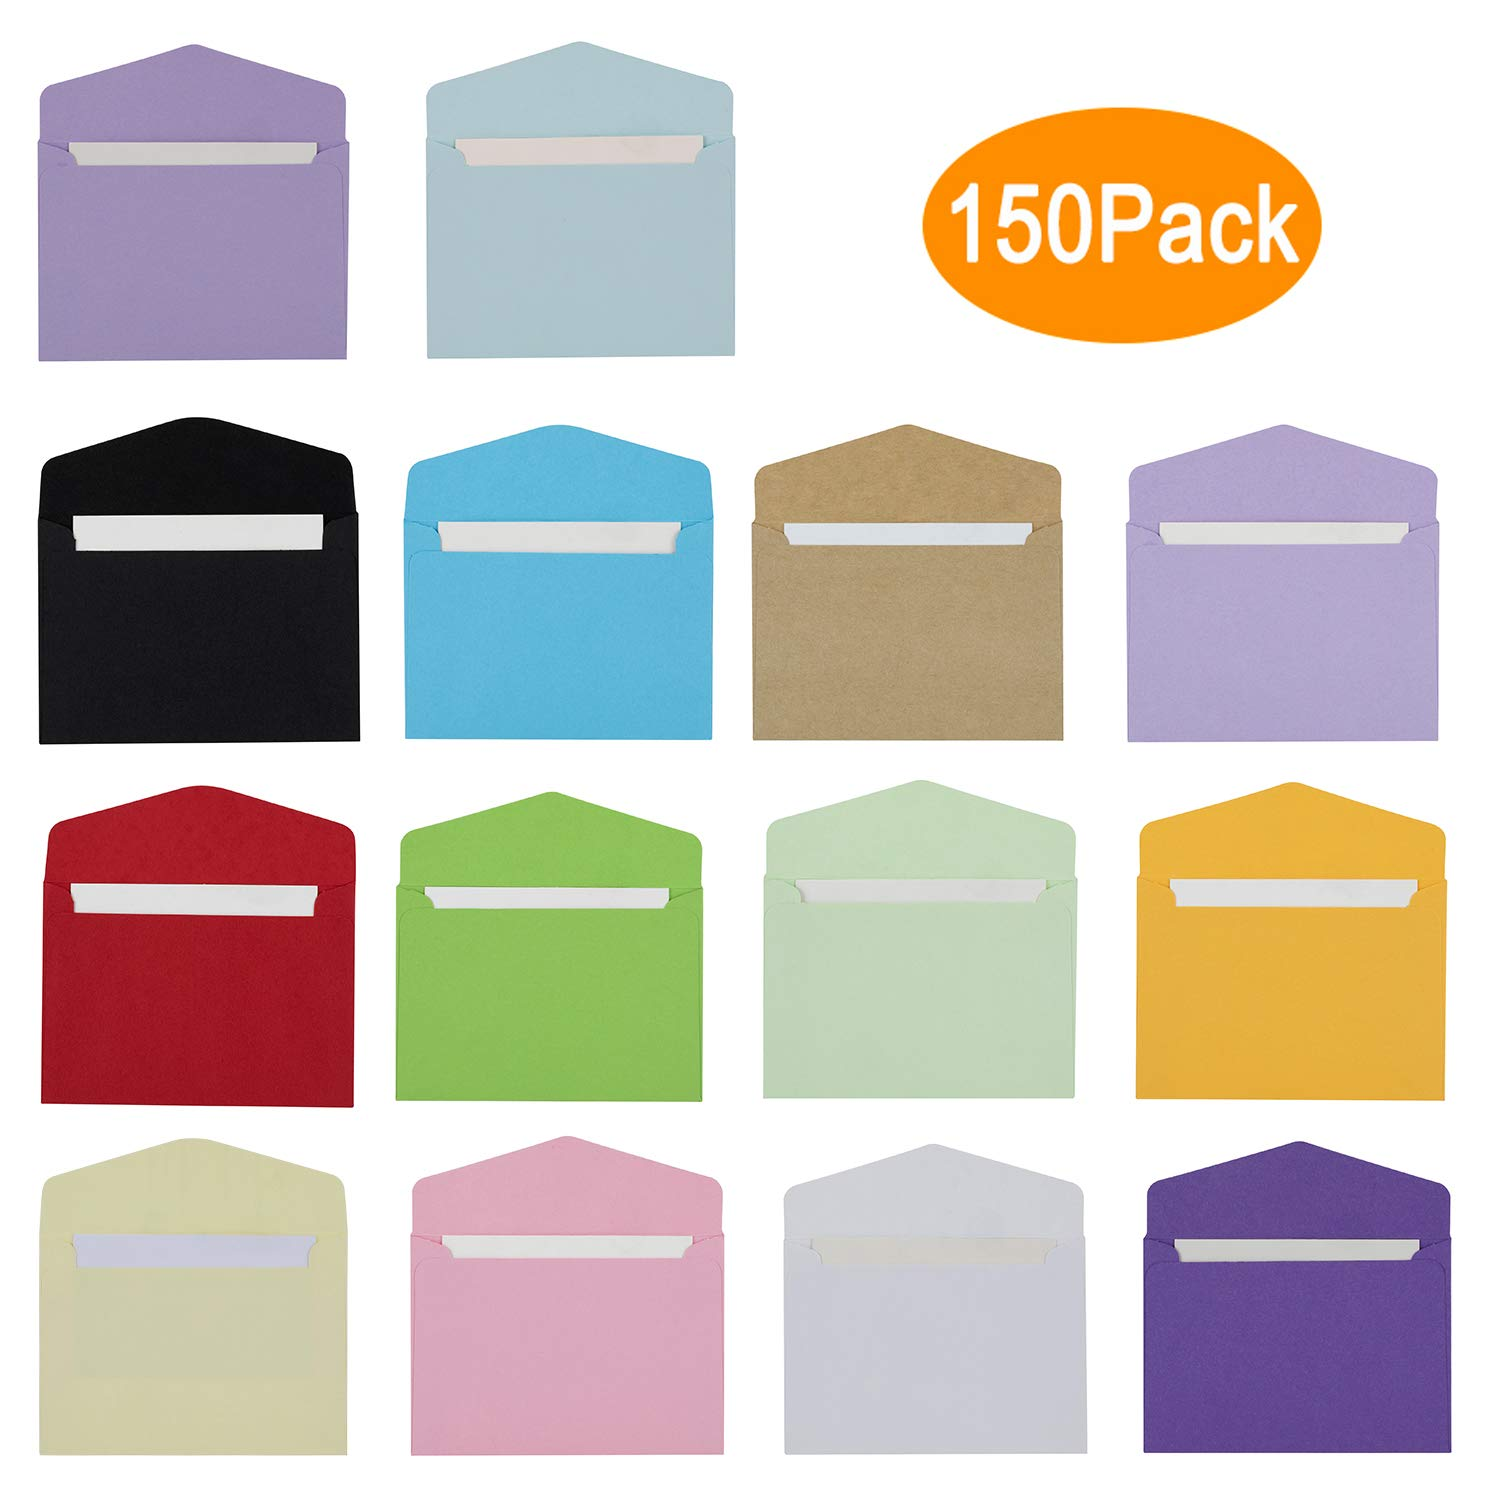 Colorful Envelopes with White Blank Business Cards - 150Pcs Pocket Envelopes